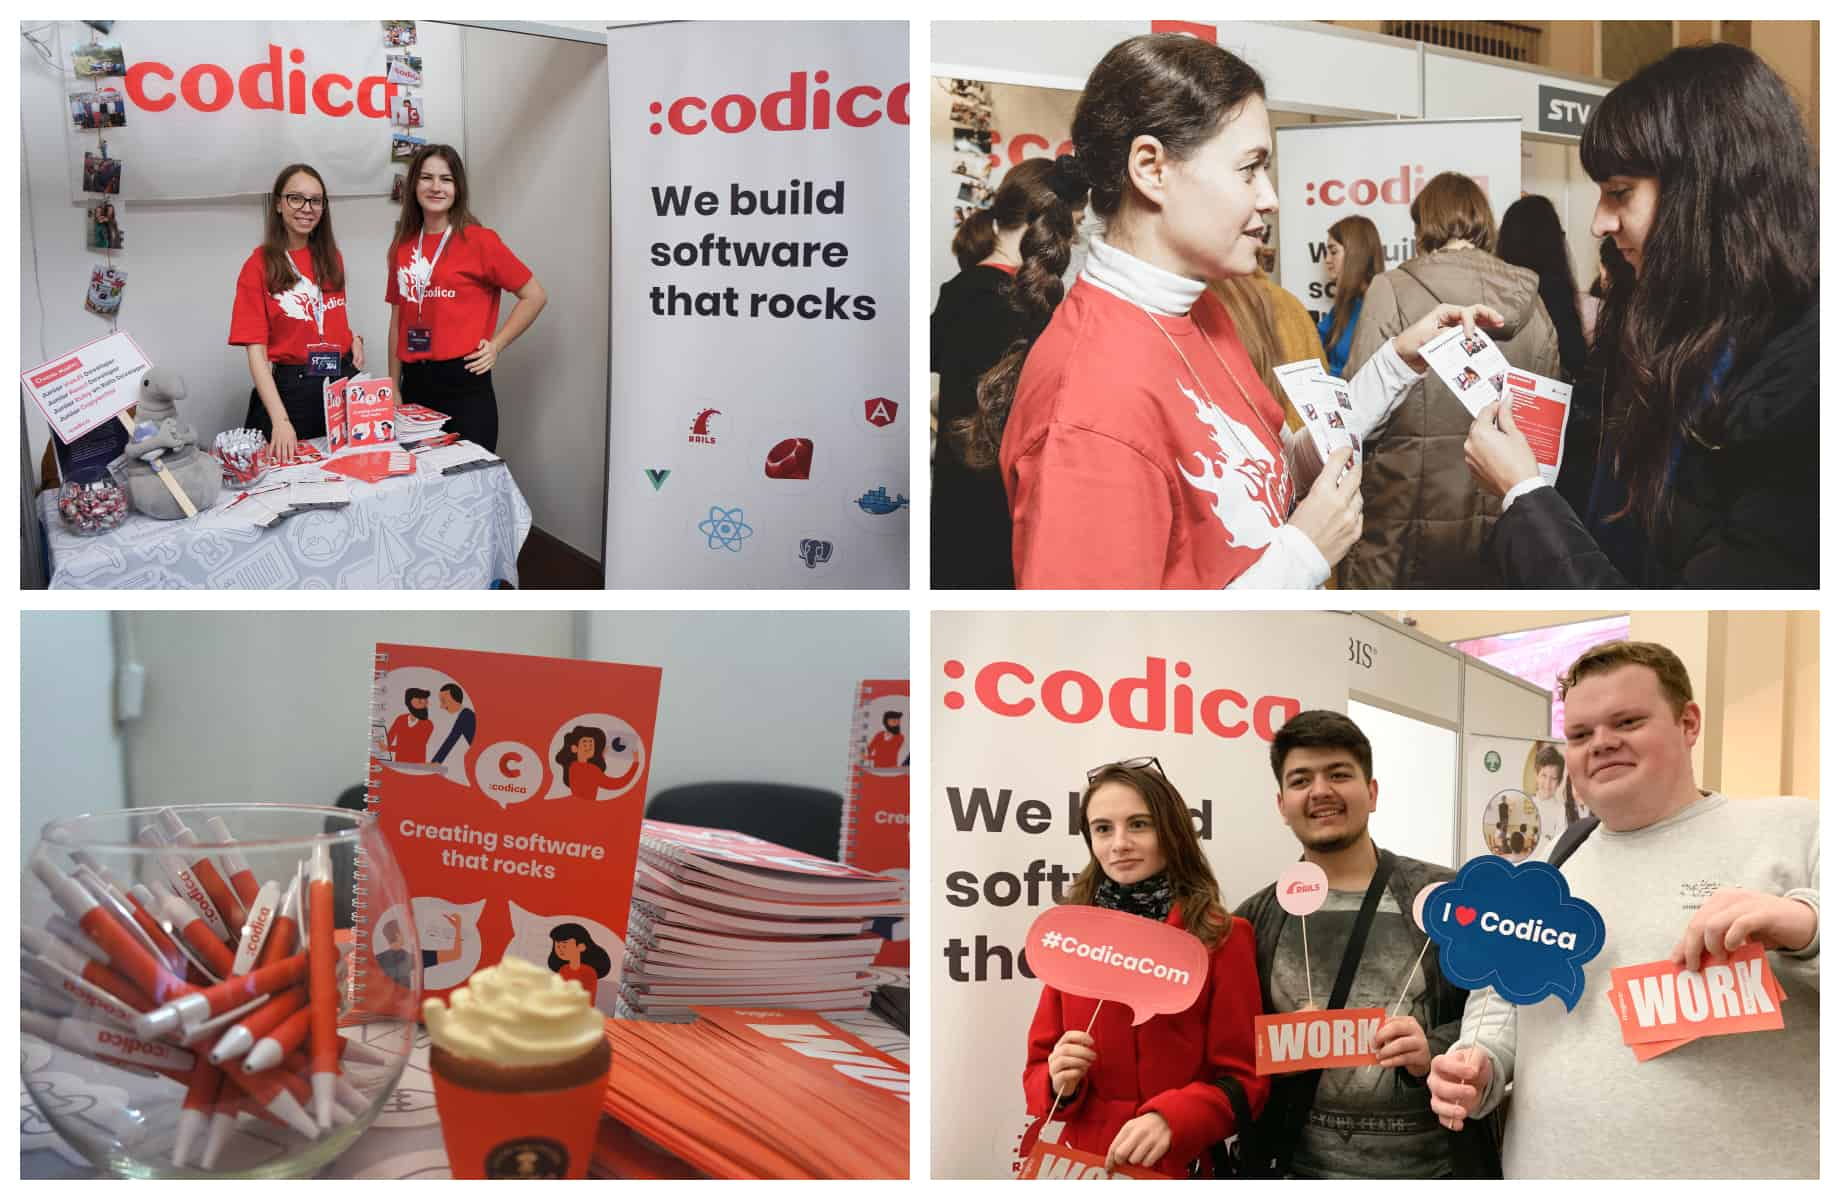 Codica team at a job fair